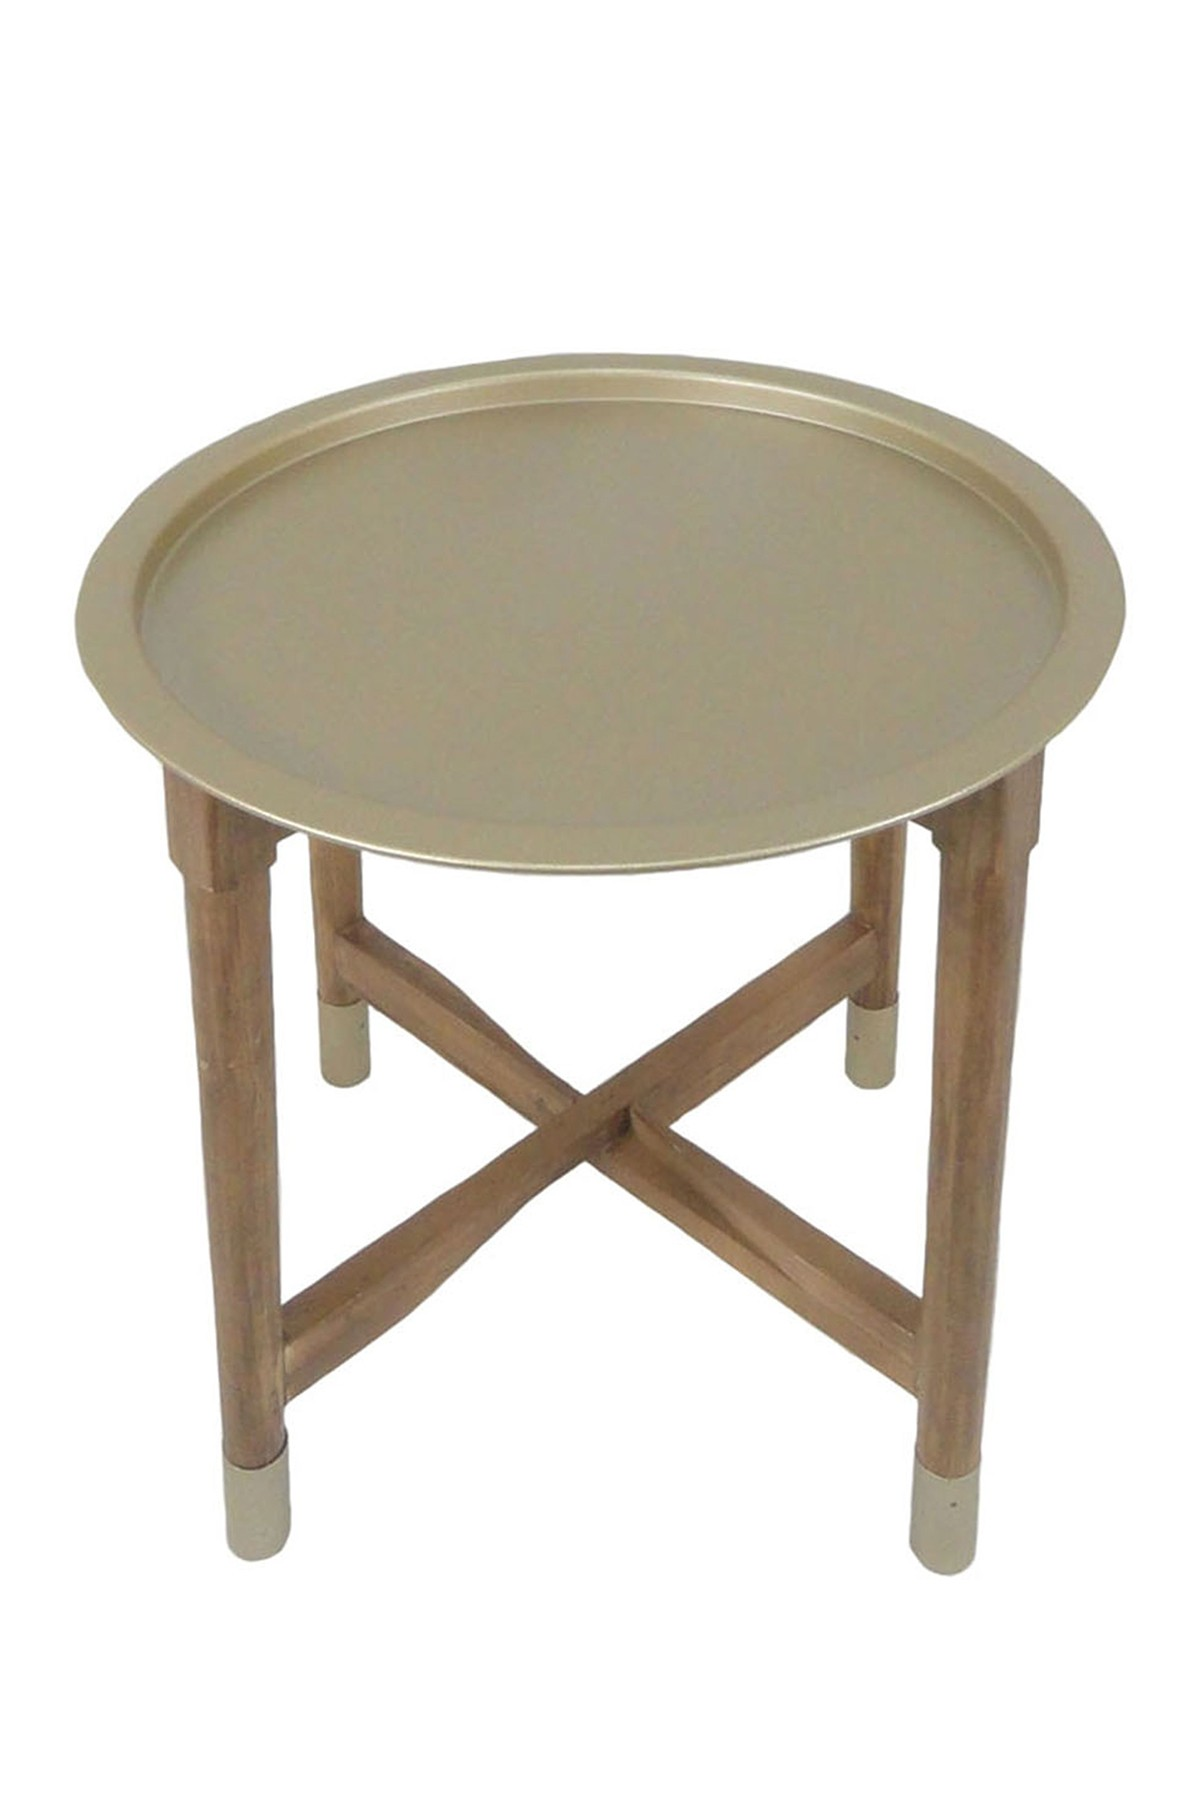 sagebrook home gold metal tray top accent table nordstrom rack counter high dining vintage wood side skinny wine outdoor sectional cover coffee rustic chic end tables funky